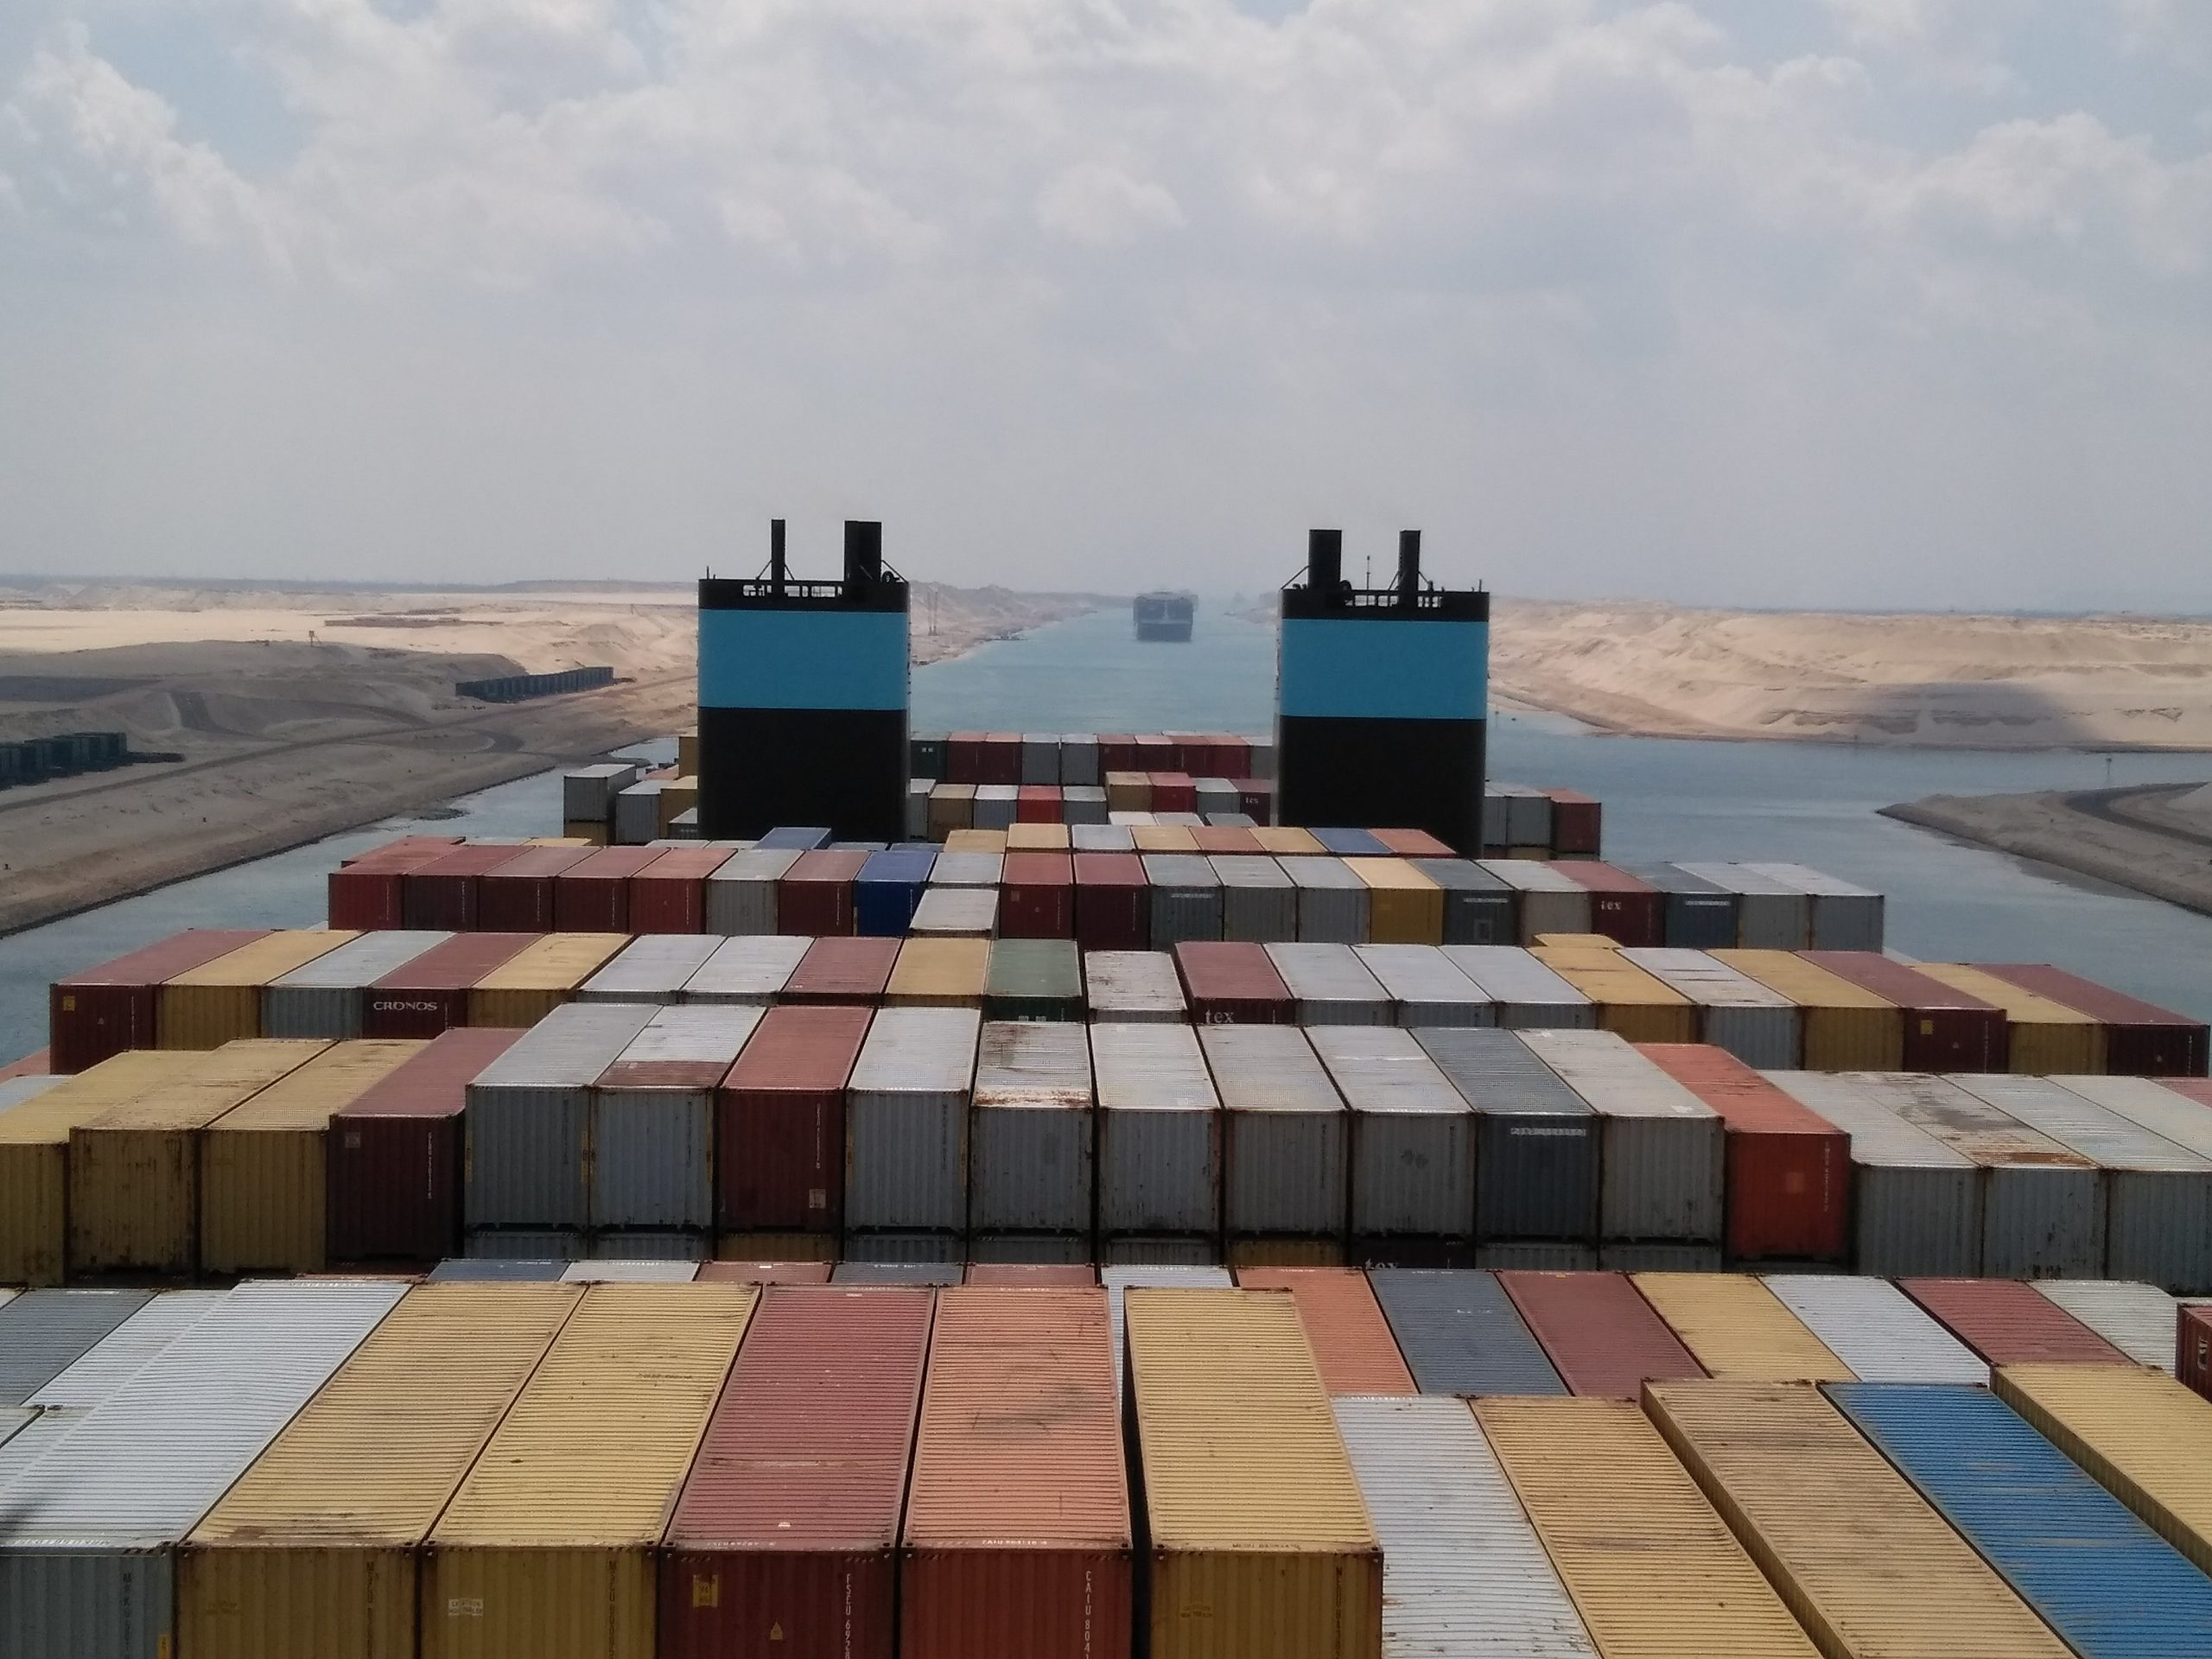 PIC: Passing between the hot desert sands of the Suez Canal, Egypt